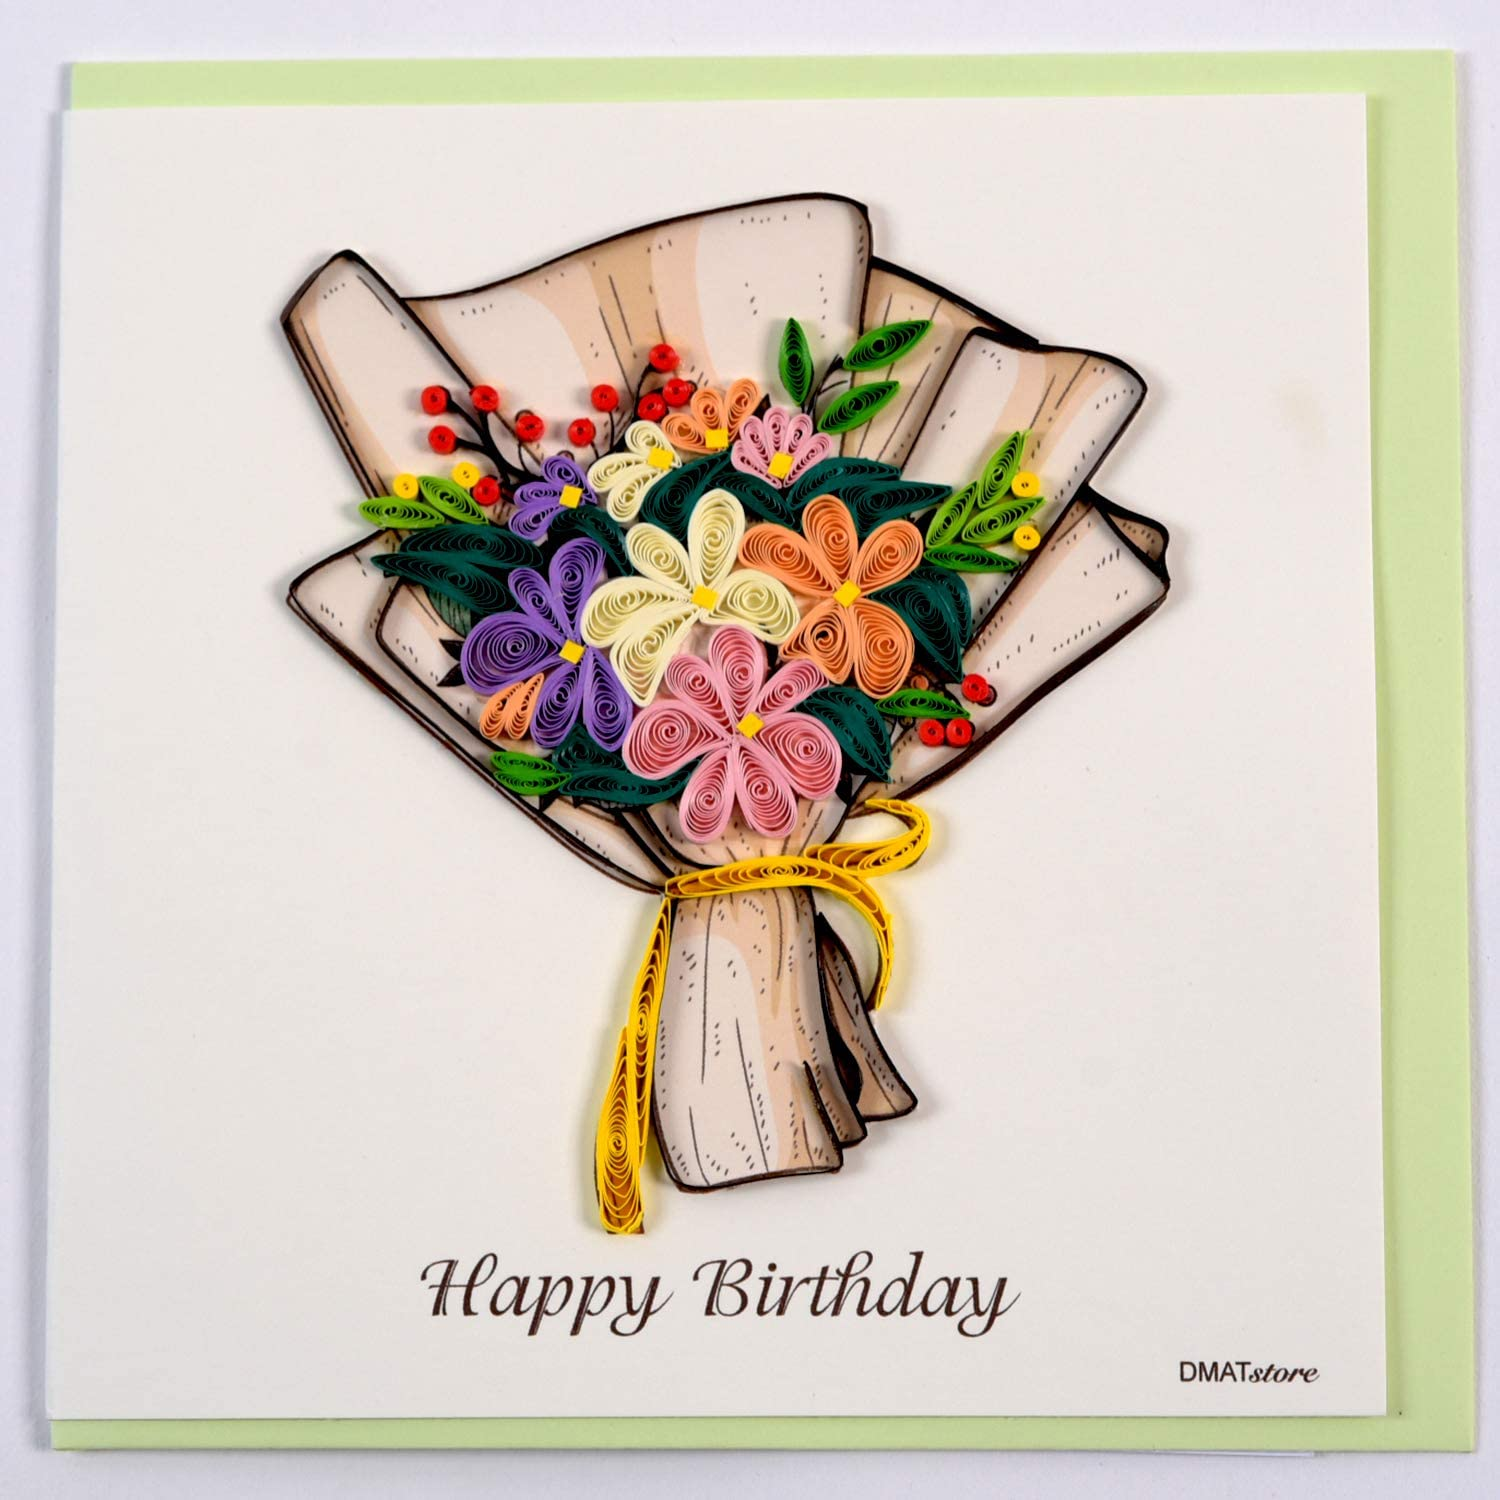 Birthday Girl Quilling Greeting Card Design Greeting Card for all occasion by GREENHANDSHAKE Unique Dedicated Handmade Art